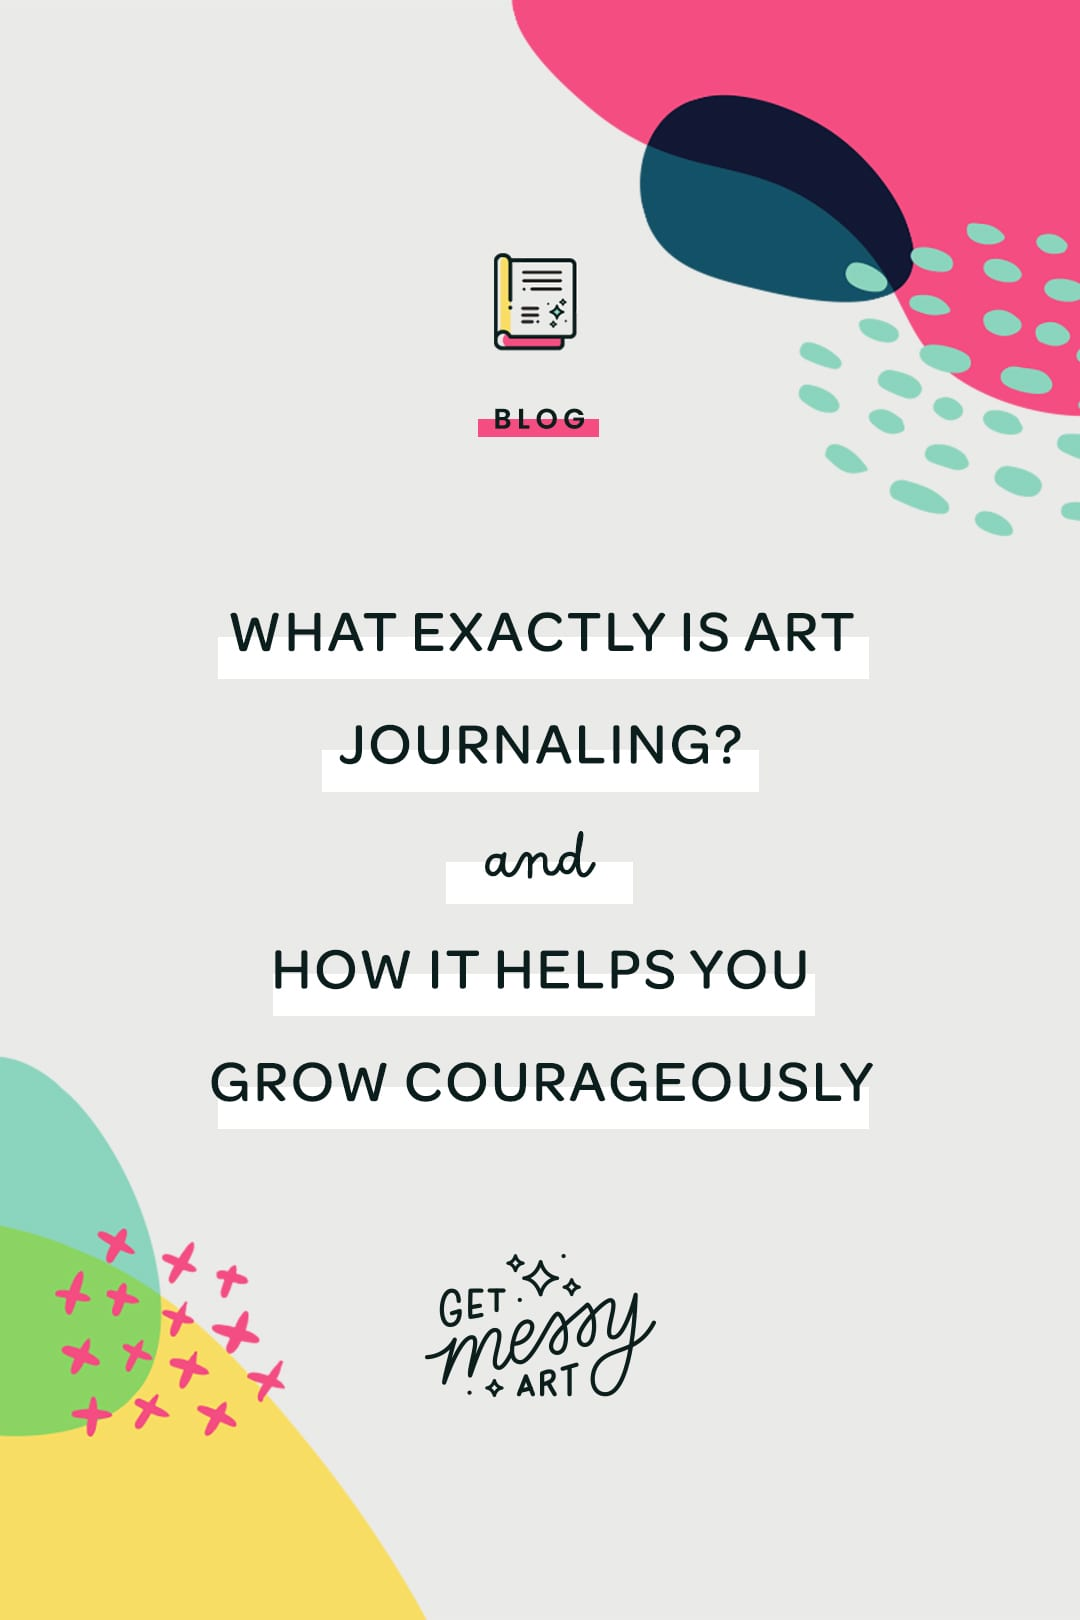 What Is Art Journaling? And How It Helps You Grow Courageously as an Artist